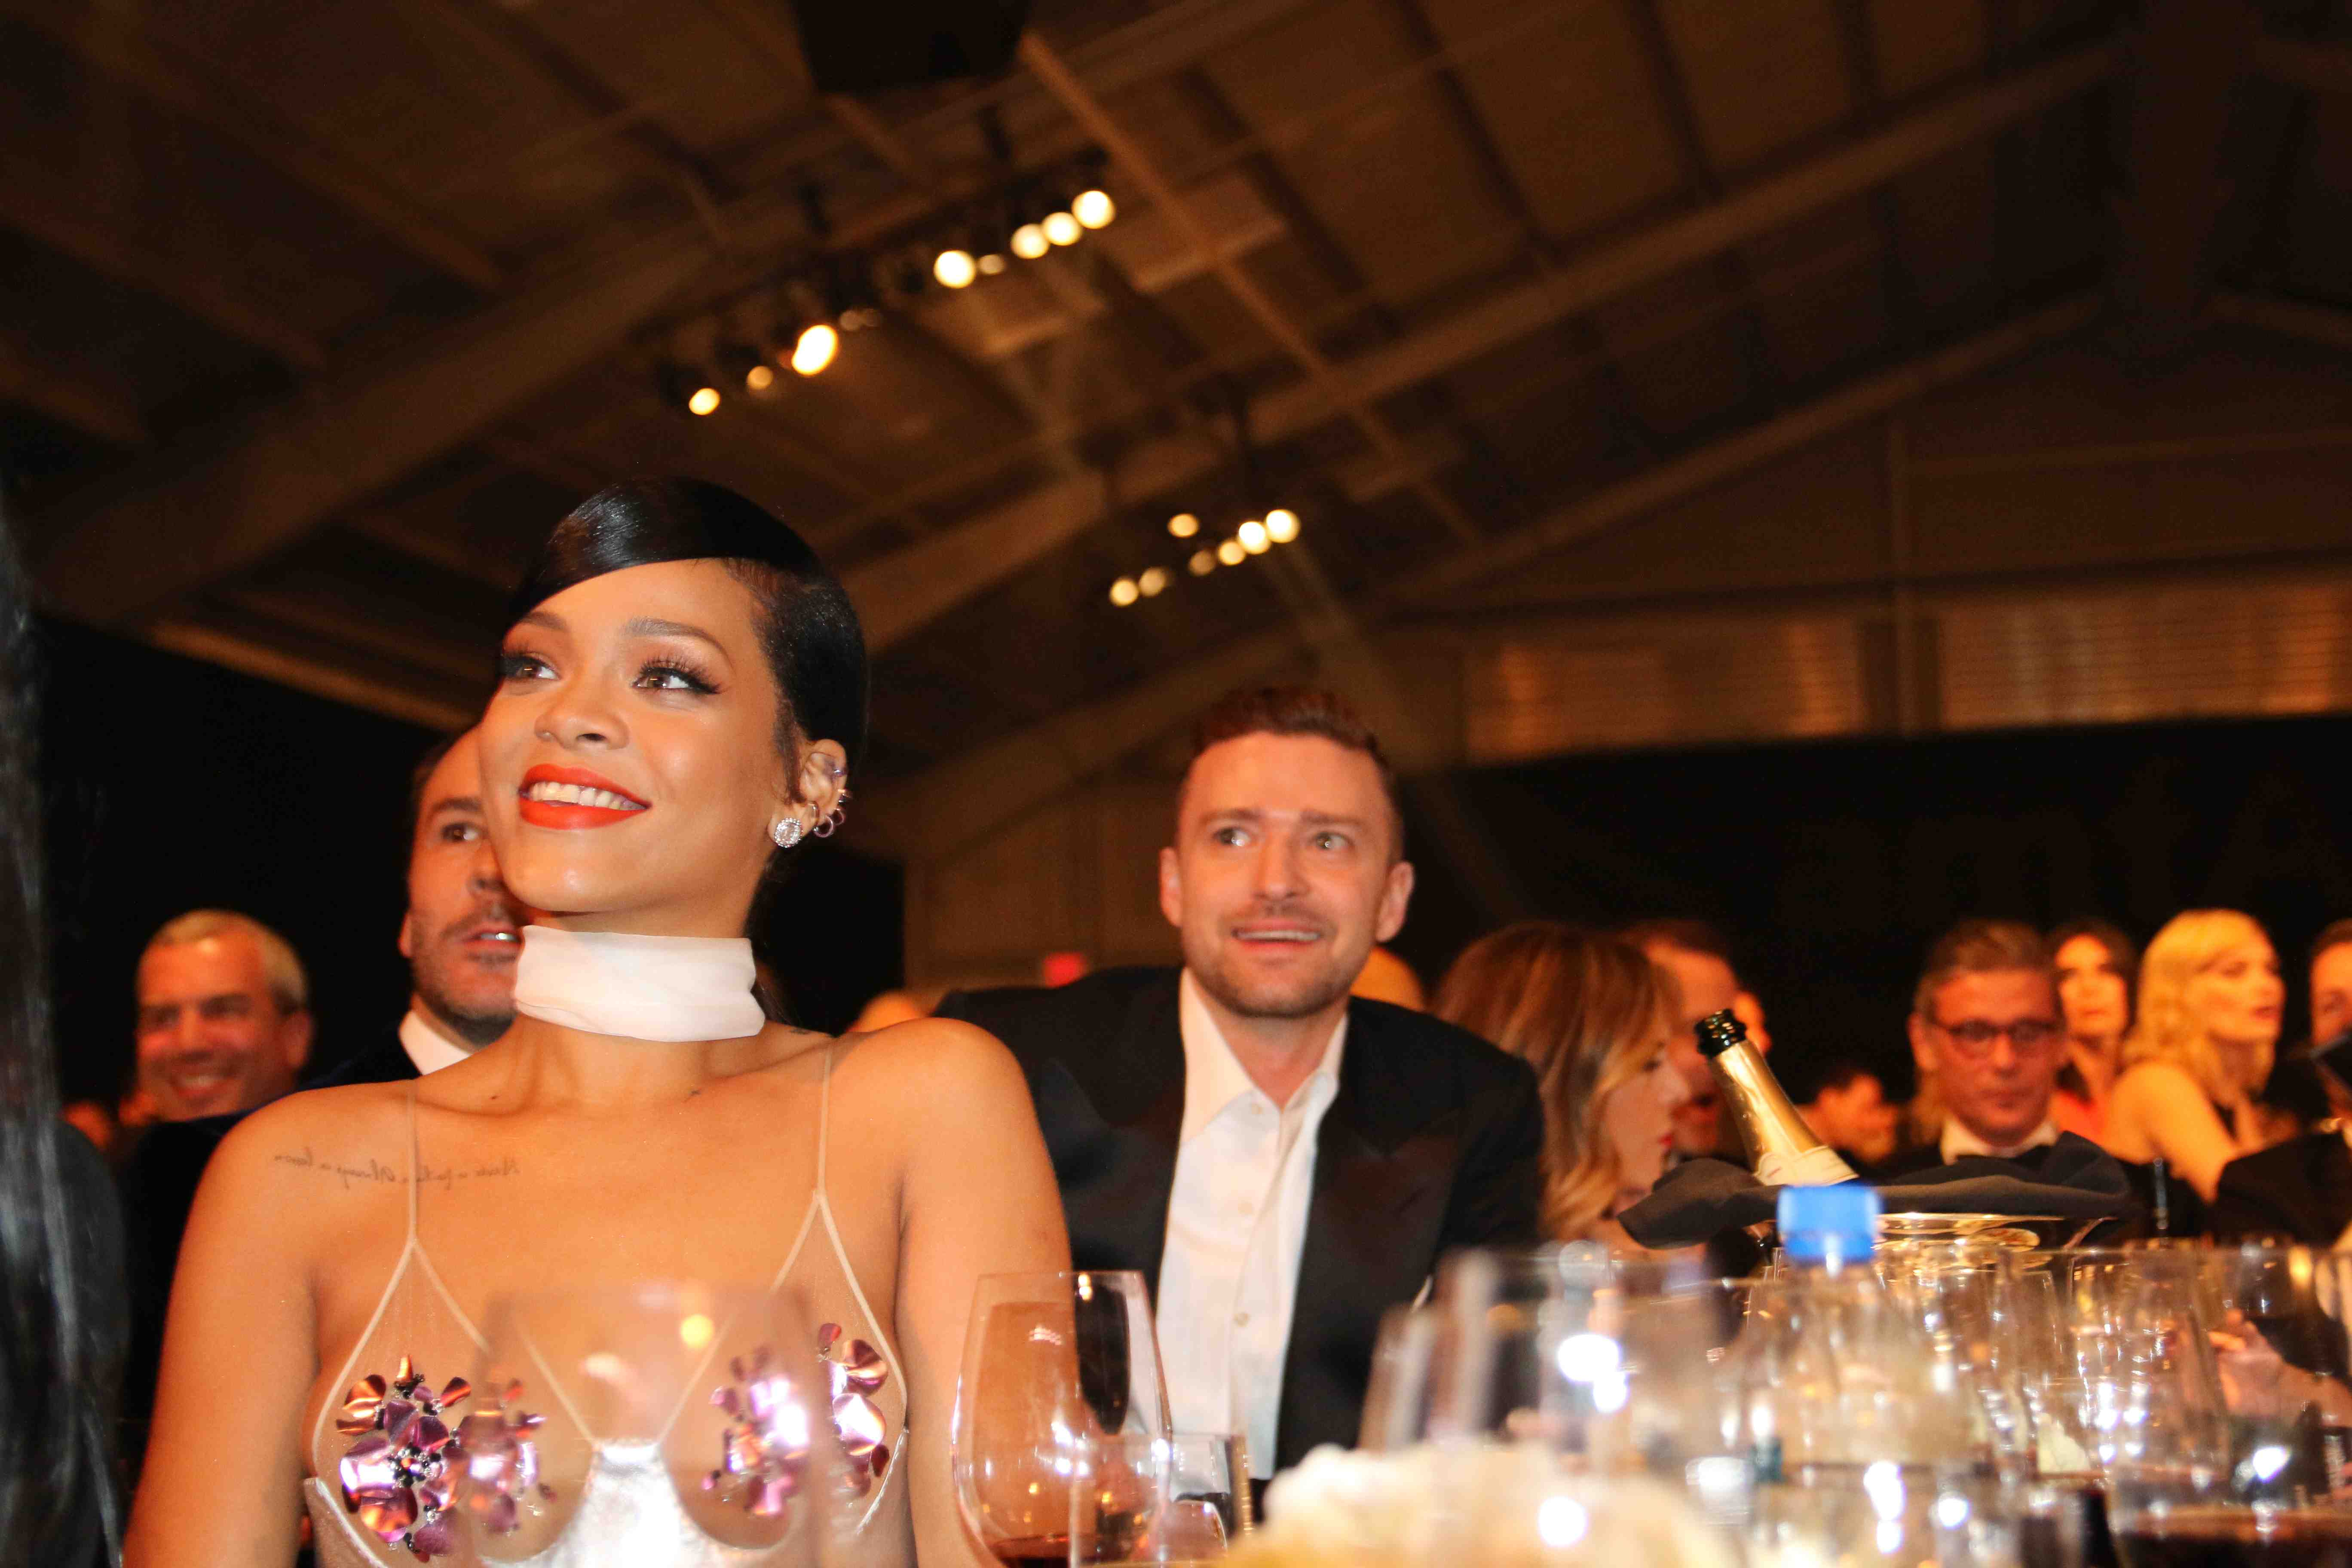 RIhanna and Justin Timberlake